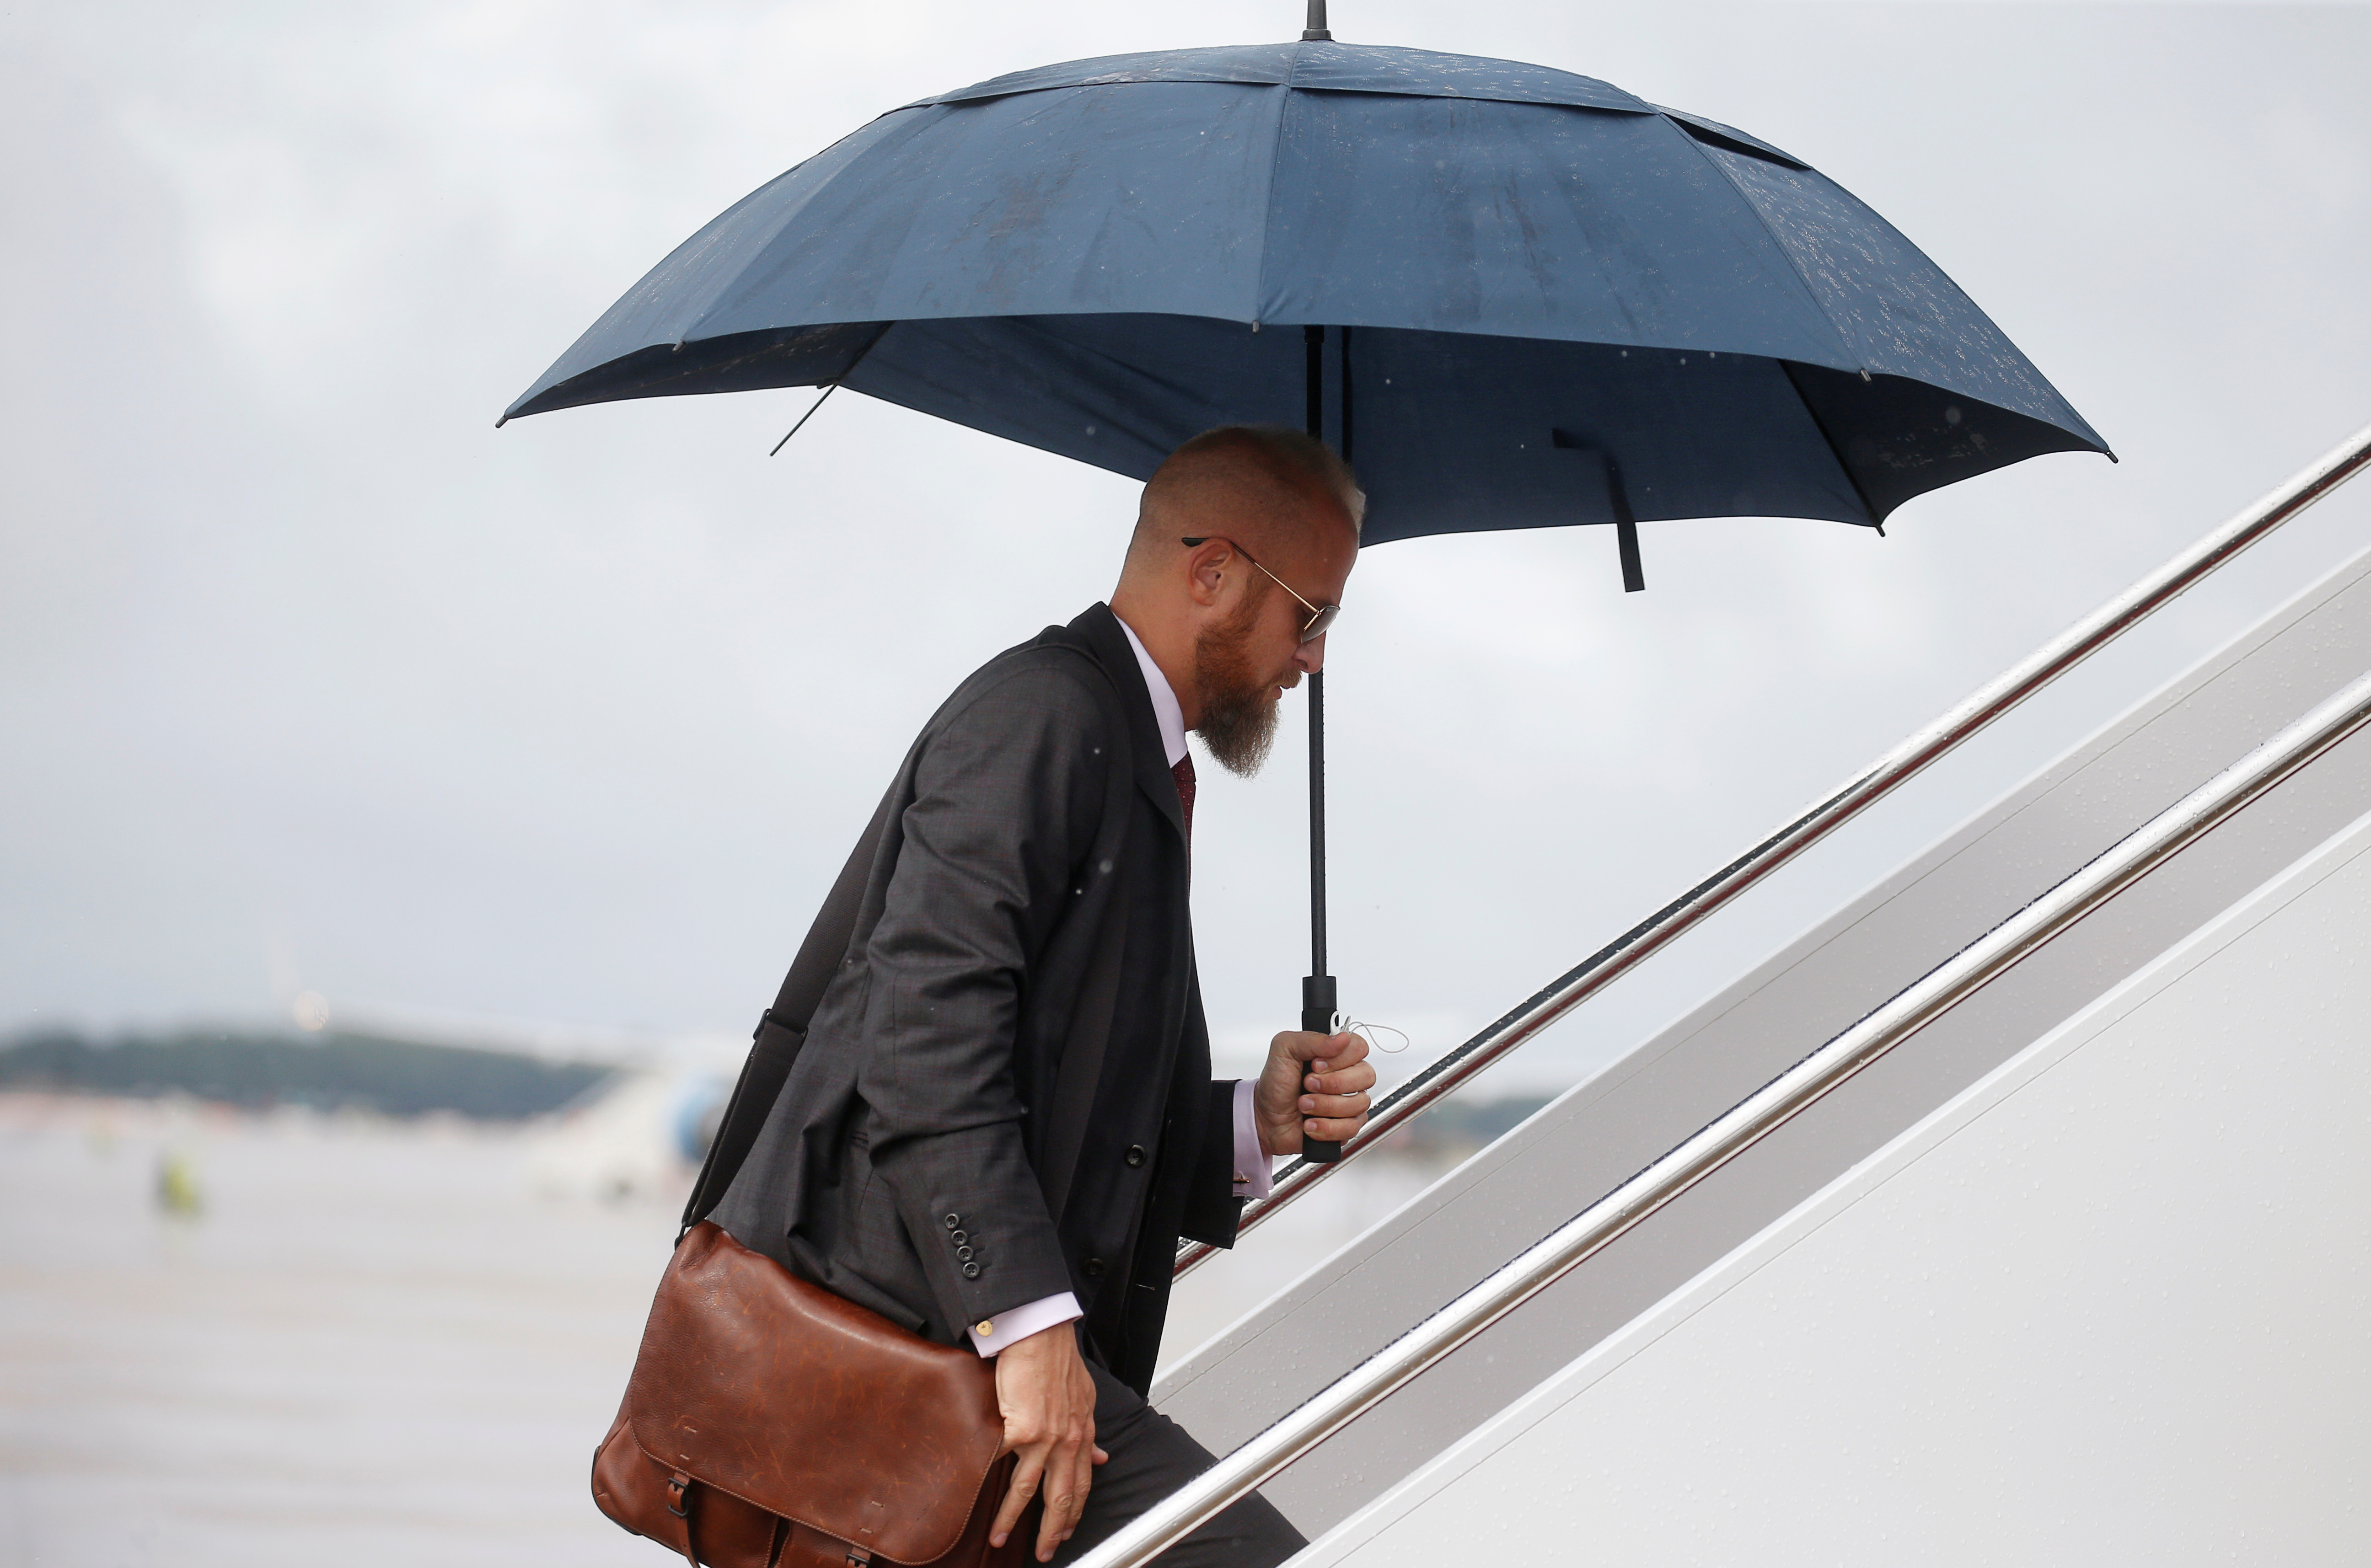 Trump 2020 re-election campaign manager Brad Parscale boards Air Force One to travel to West Virginia with the U.S. President Donald Trump at Joint Base Andrews, Maryland, U.S. August 21, 2018. REUTERS/Leah Millis